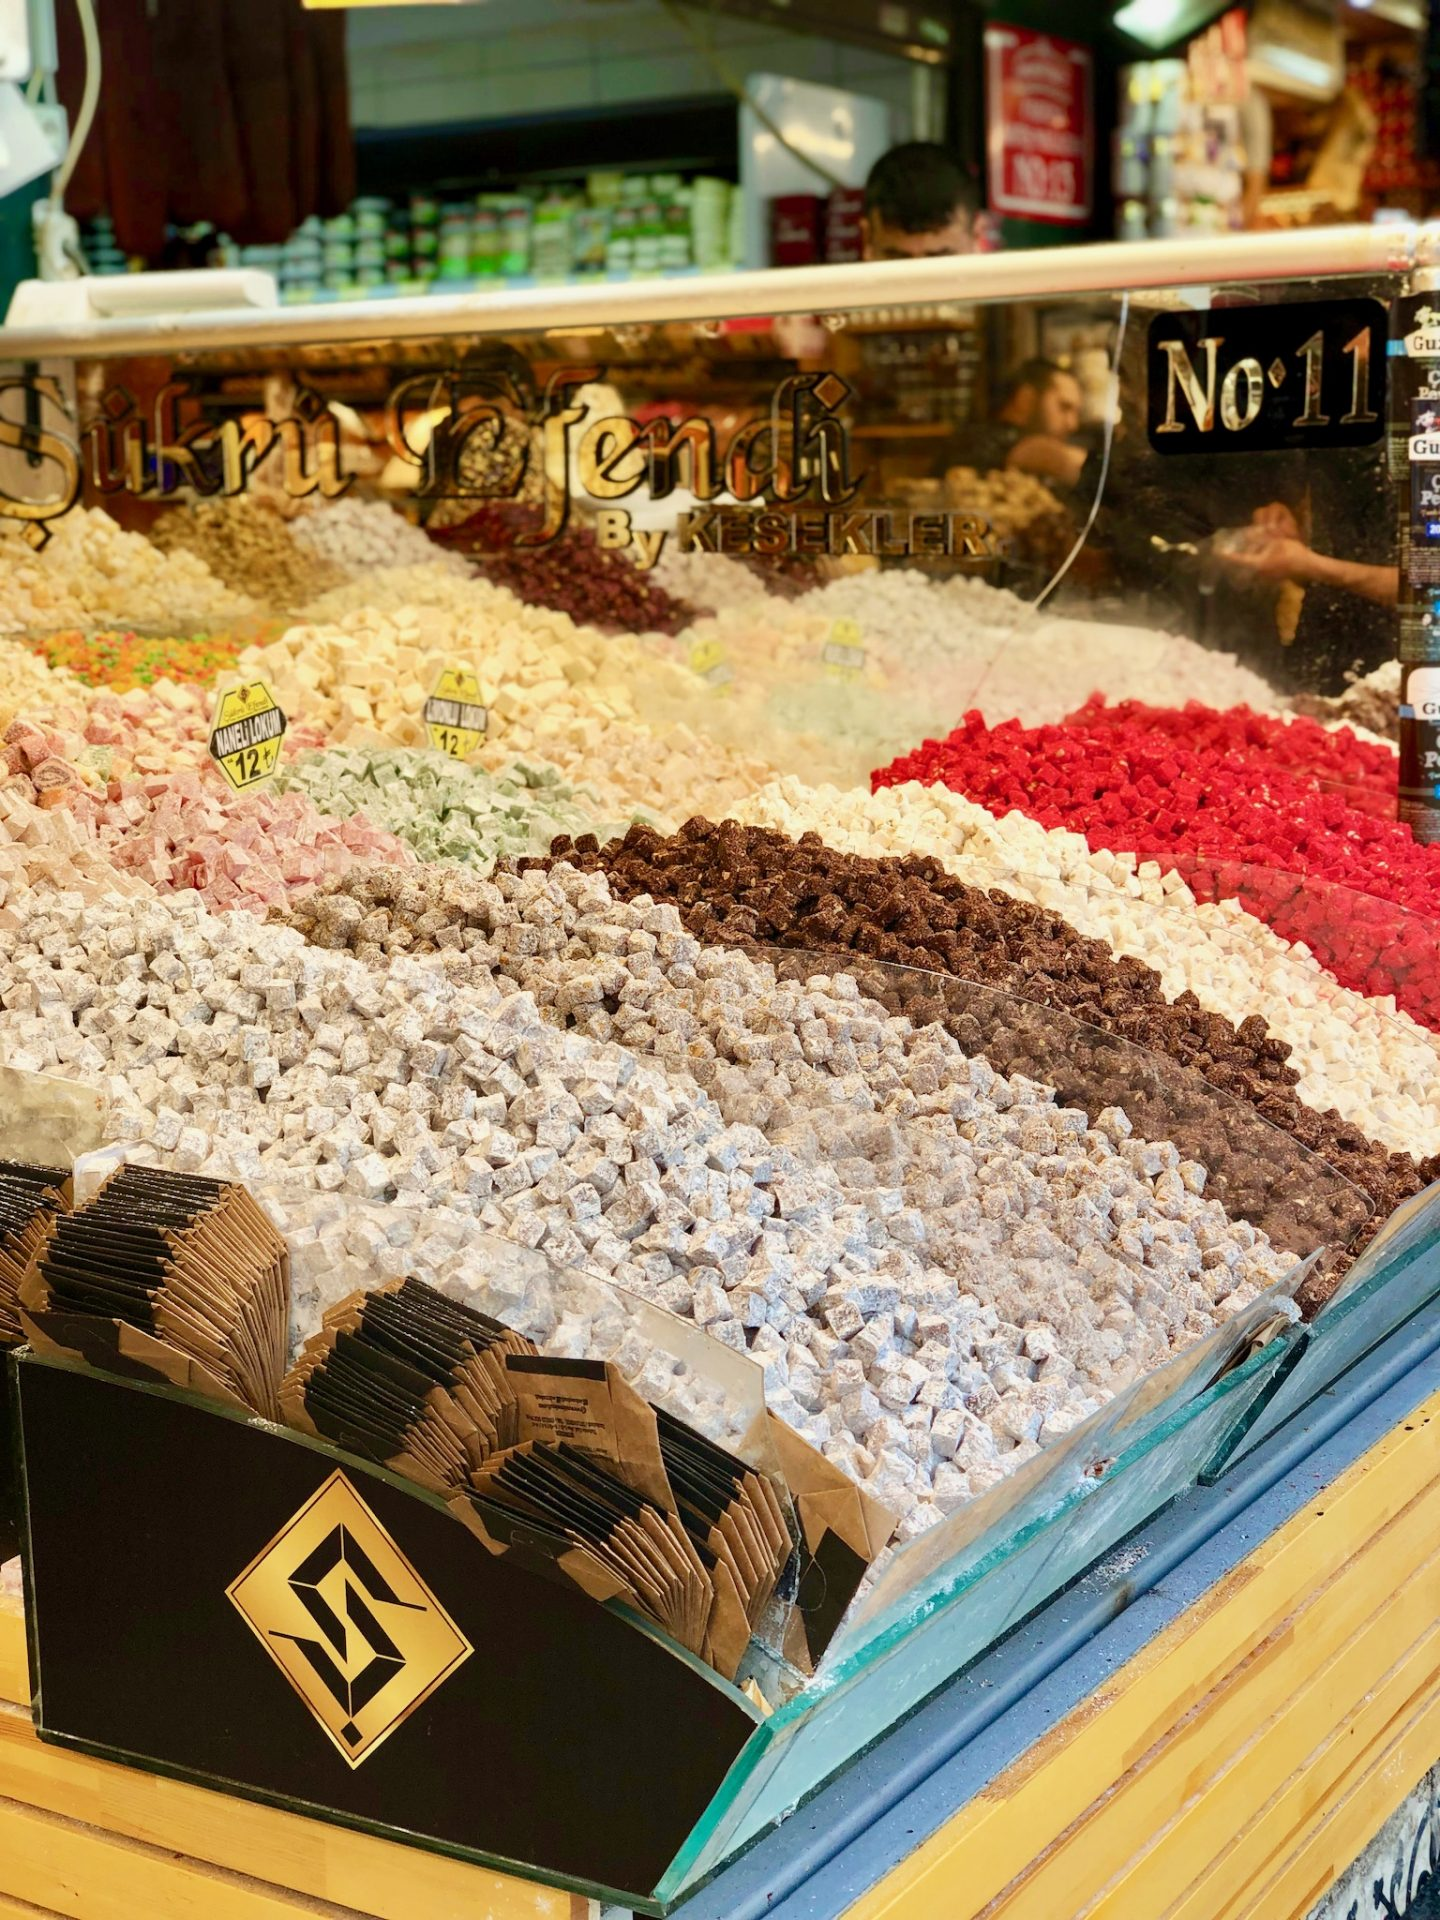 48 hours weekend in istanbul: Buckets of turkish delight in the markets